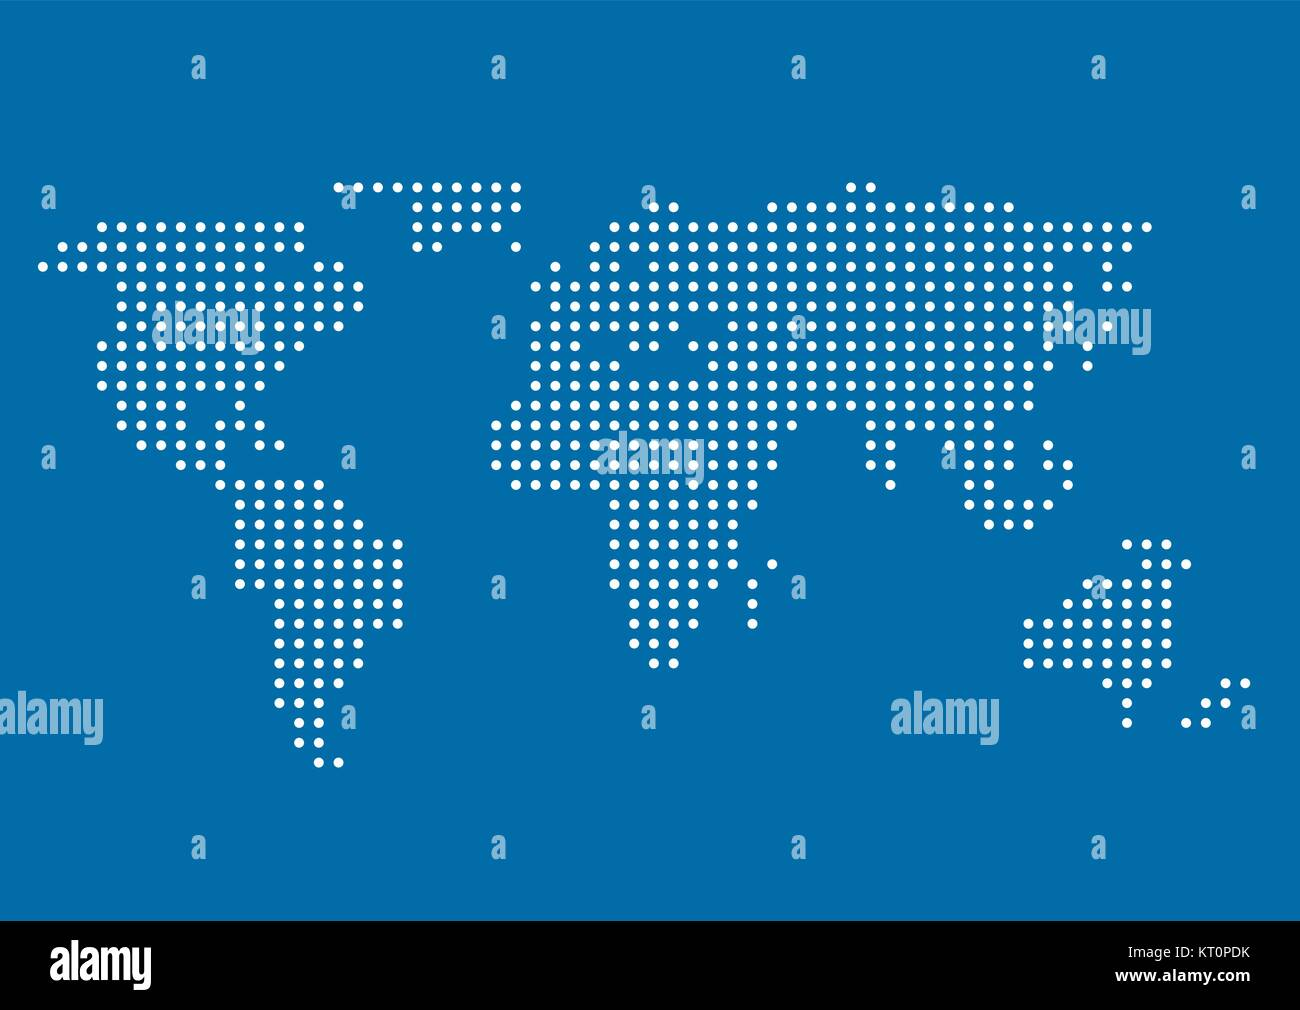 Simple World Map Stock Photos Amp Simple World Map Stock